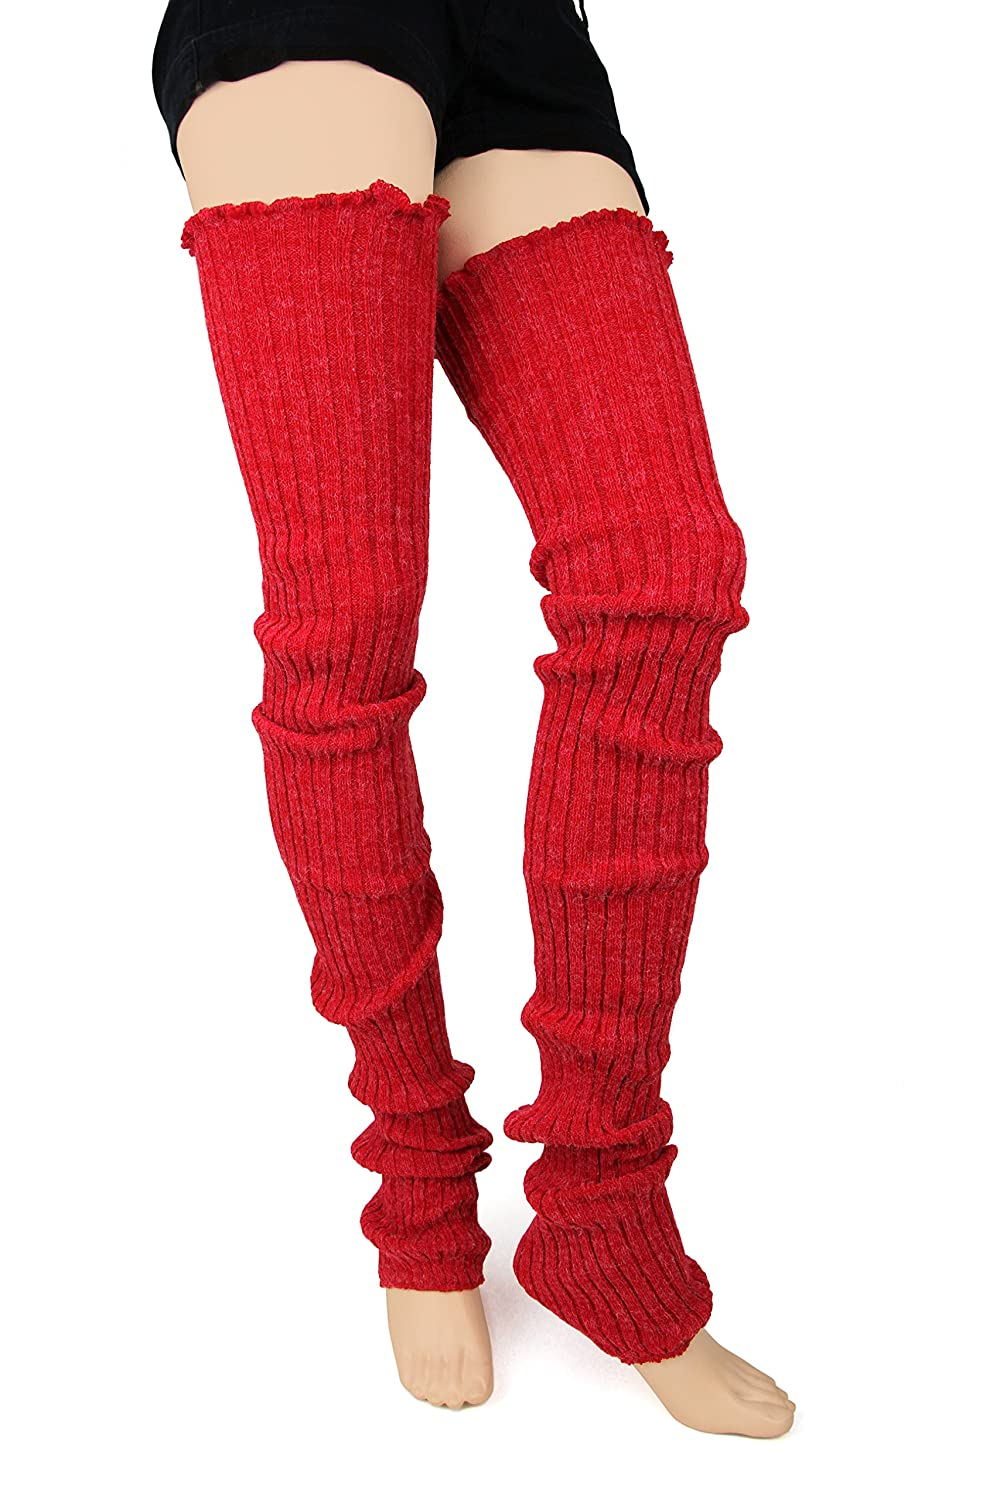 Foot Traffic - Cable Knit Legwarmers fx olive